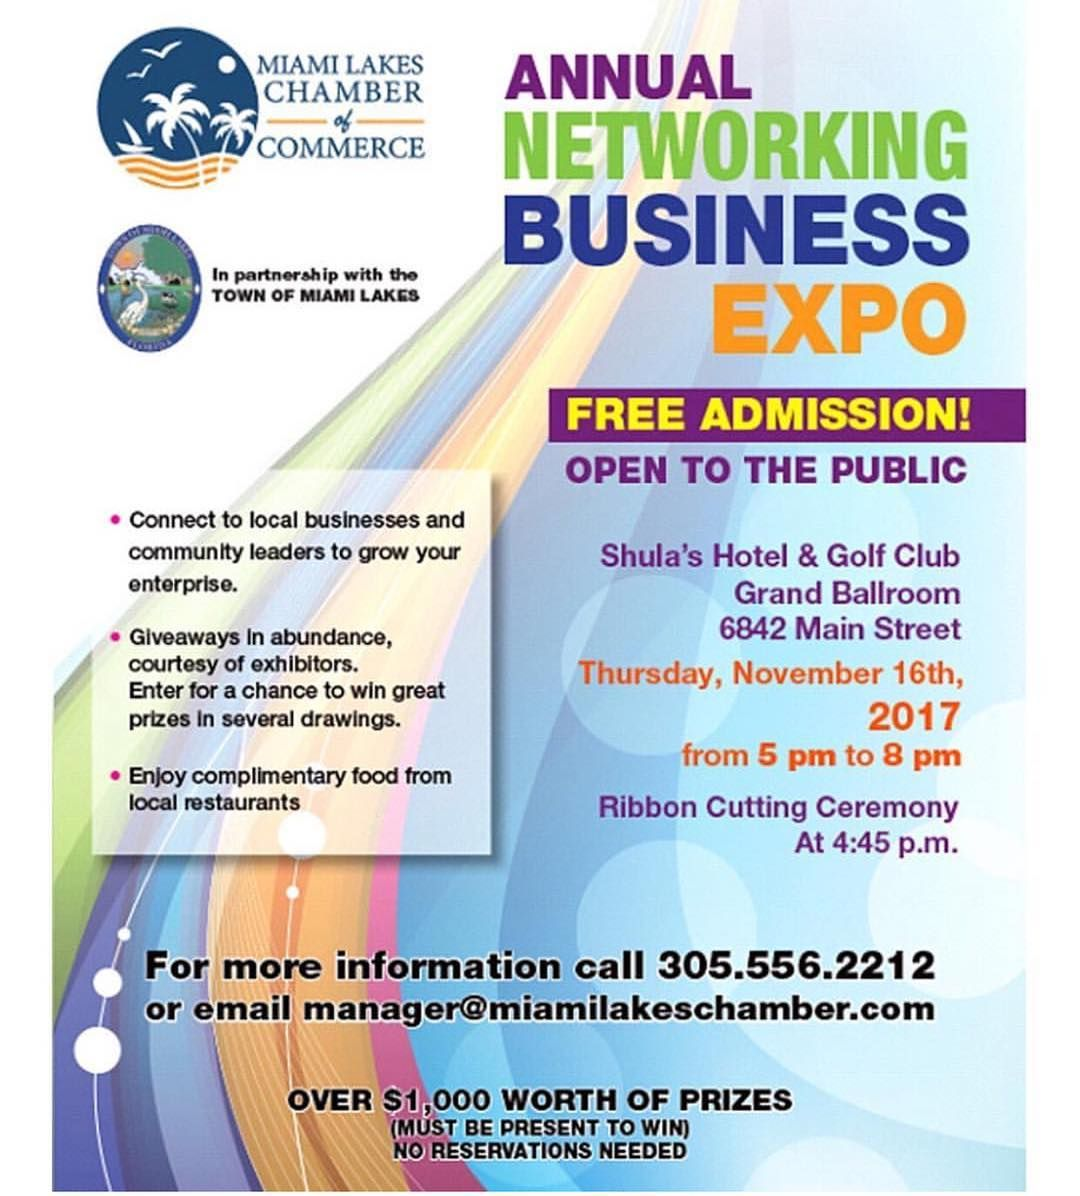 The Date Is Near Dont Forget To Join Us This Thursday November 16th At The Miamilakeschamber Annual Networking Business Exp Free Admission It Network Broward